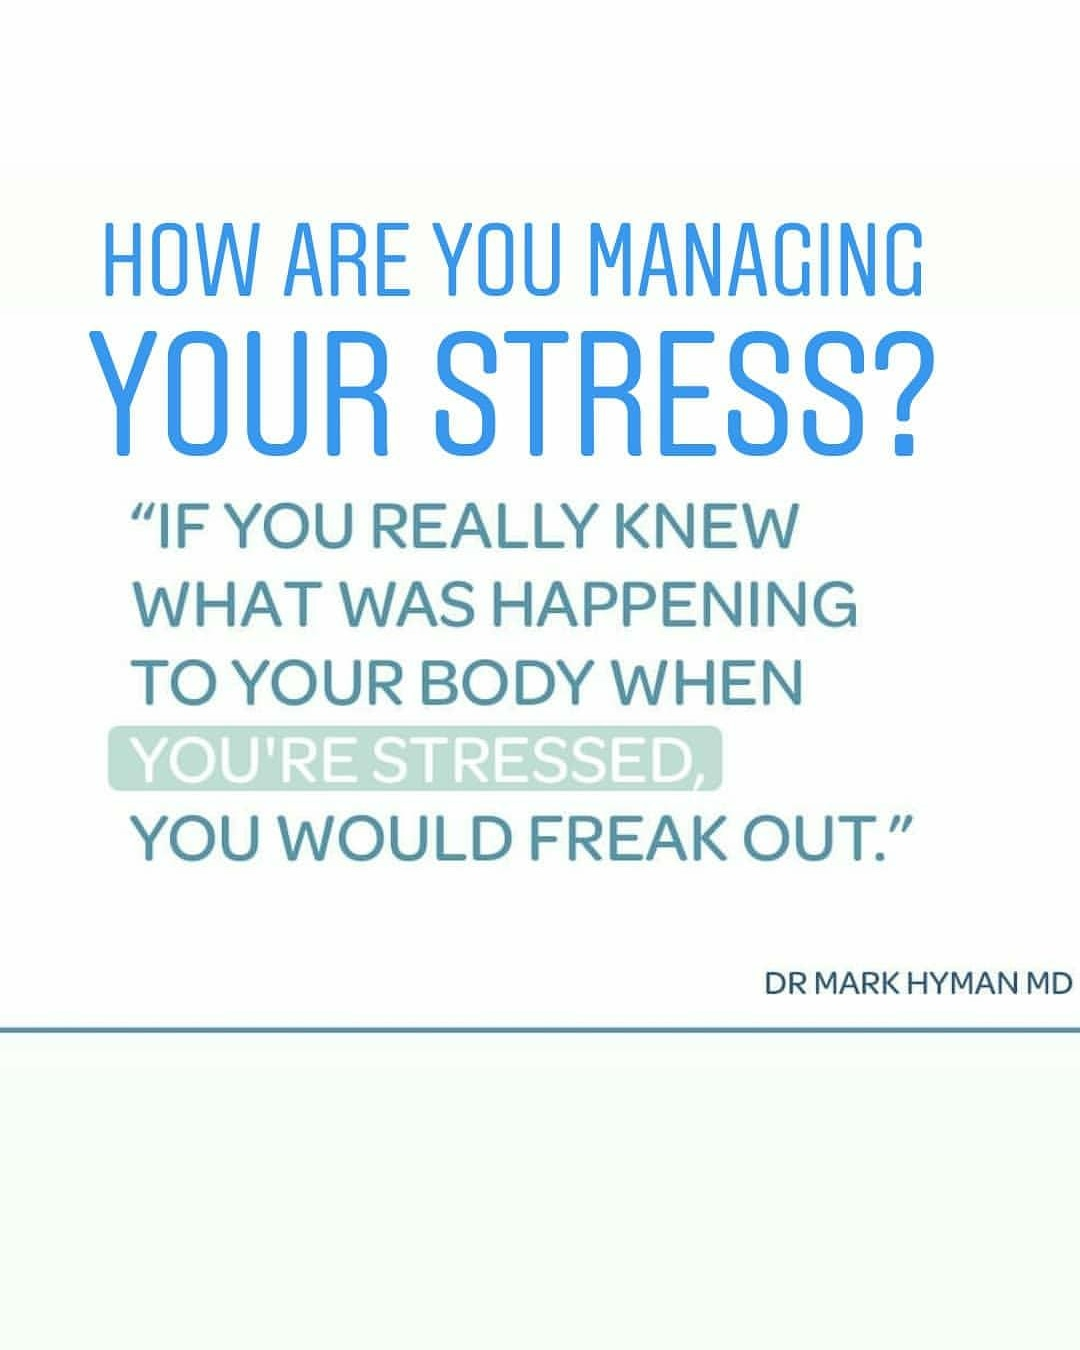 STRESS MANAGERS